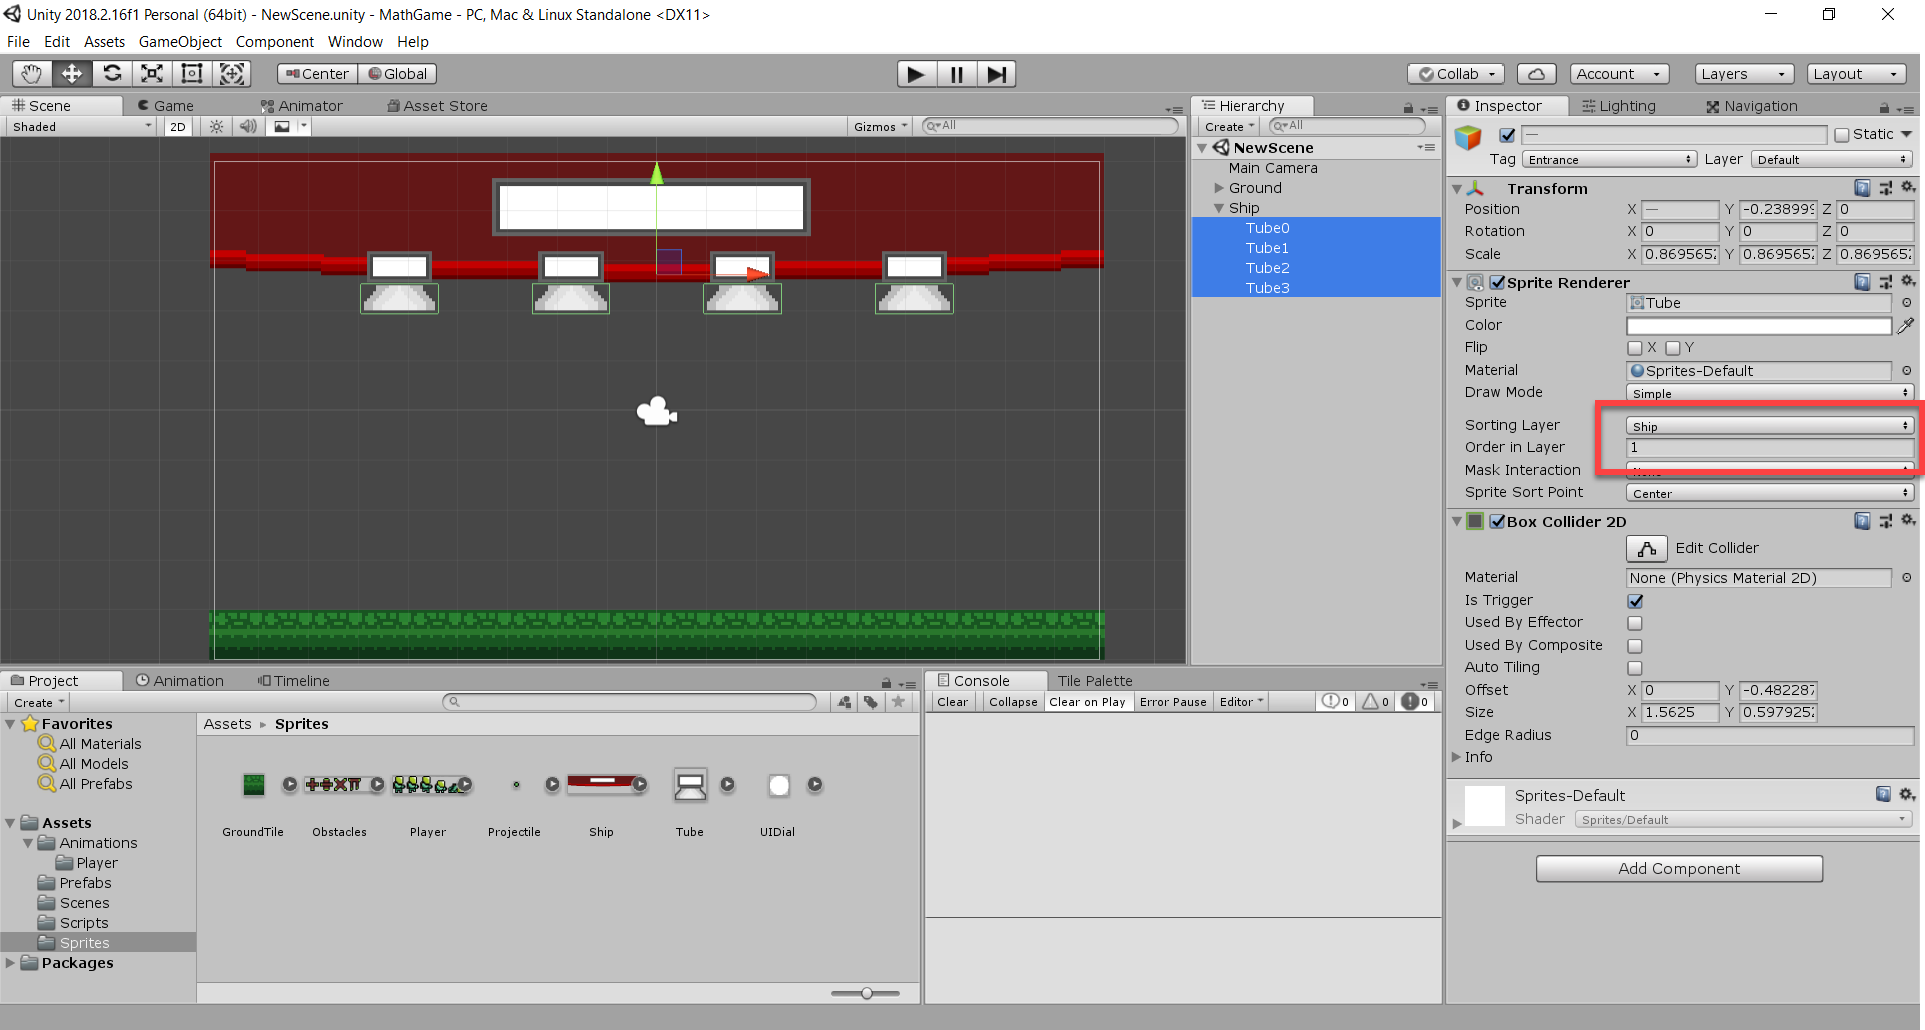 Tube objects added to Unity math game